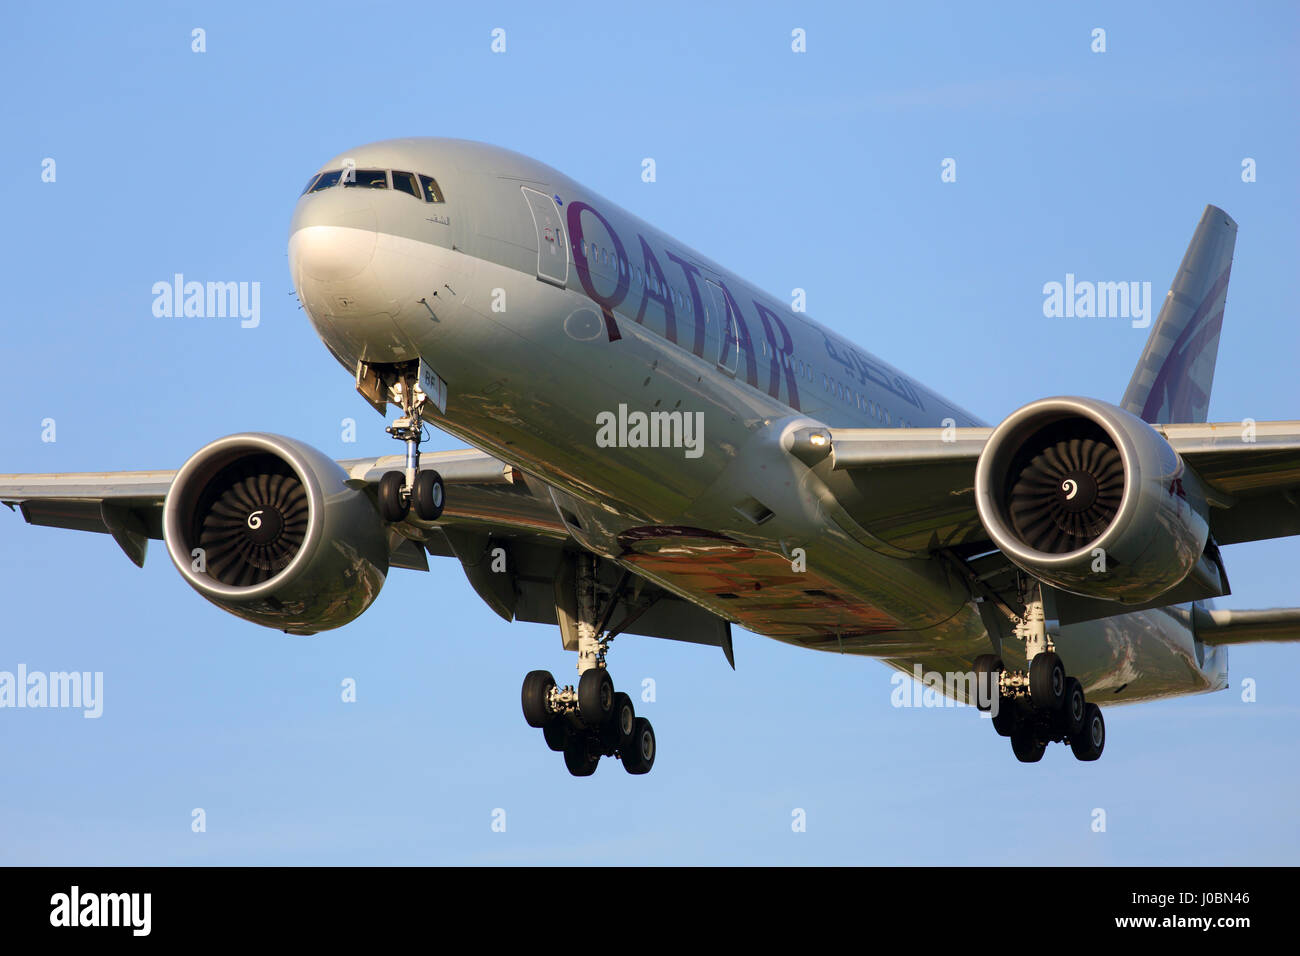 A7-BBF Qatar Airways Boeing 777-200 cn 36018 / 842 cargo aircraft arriving at London Heathrow airport - Stock Image